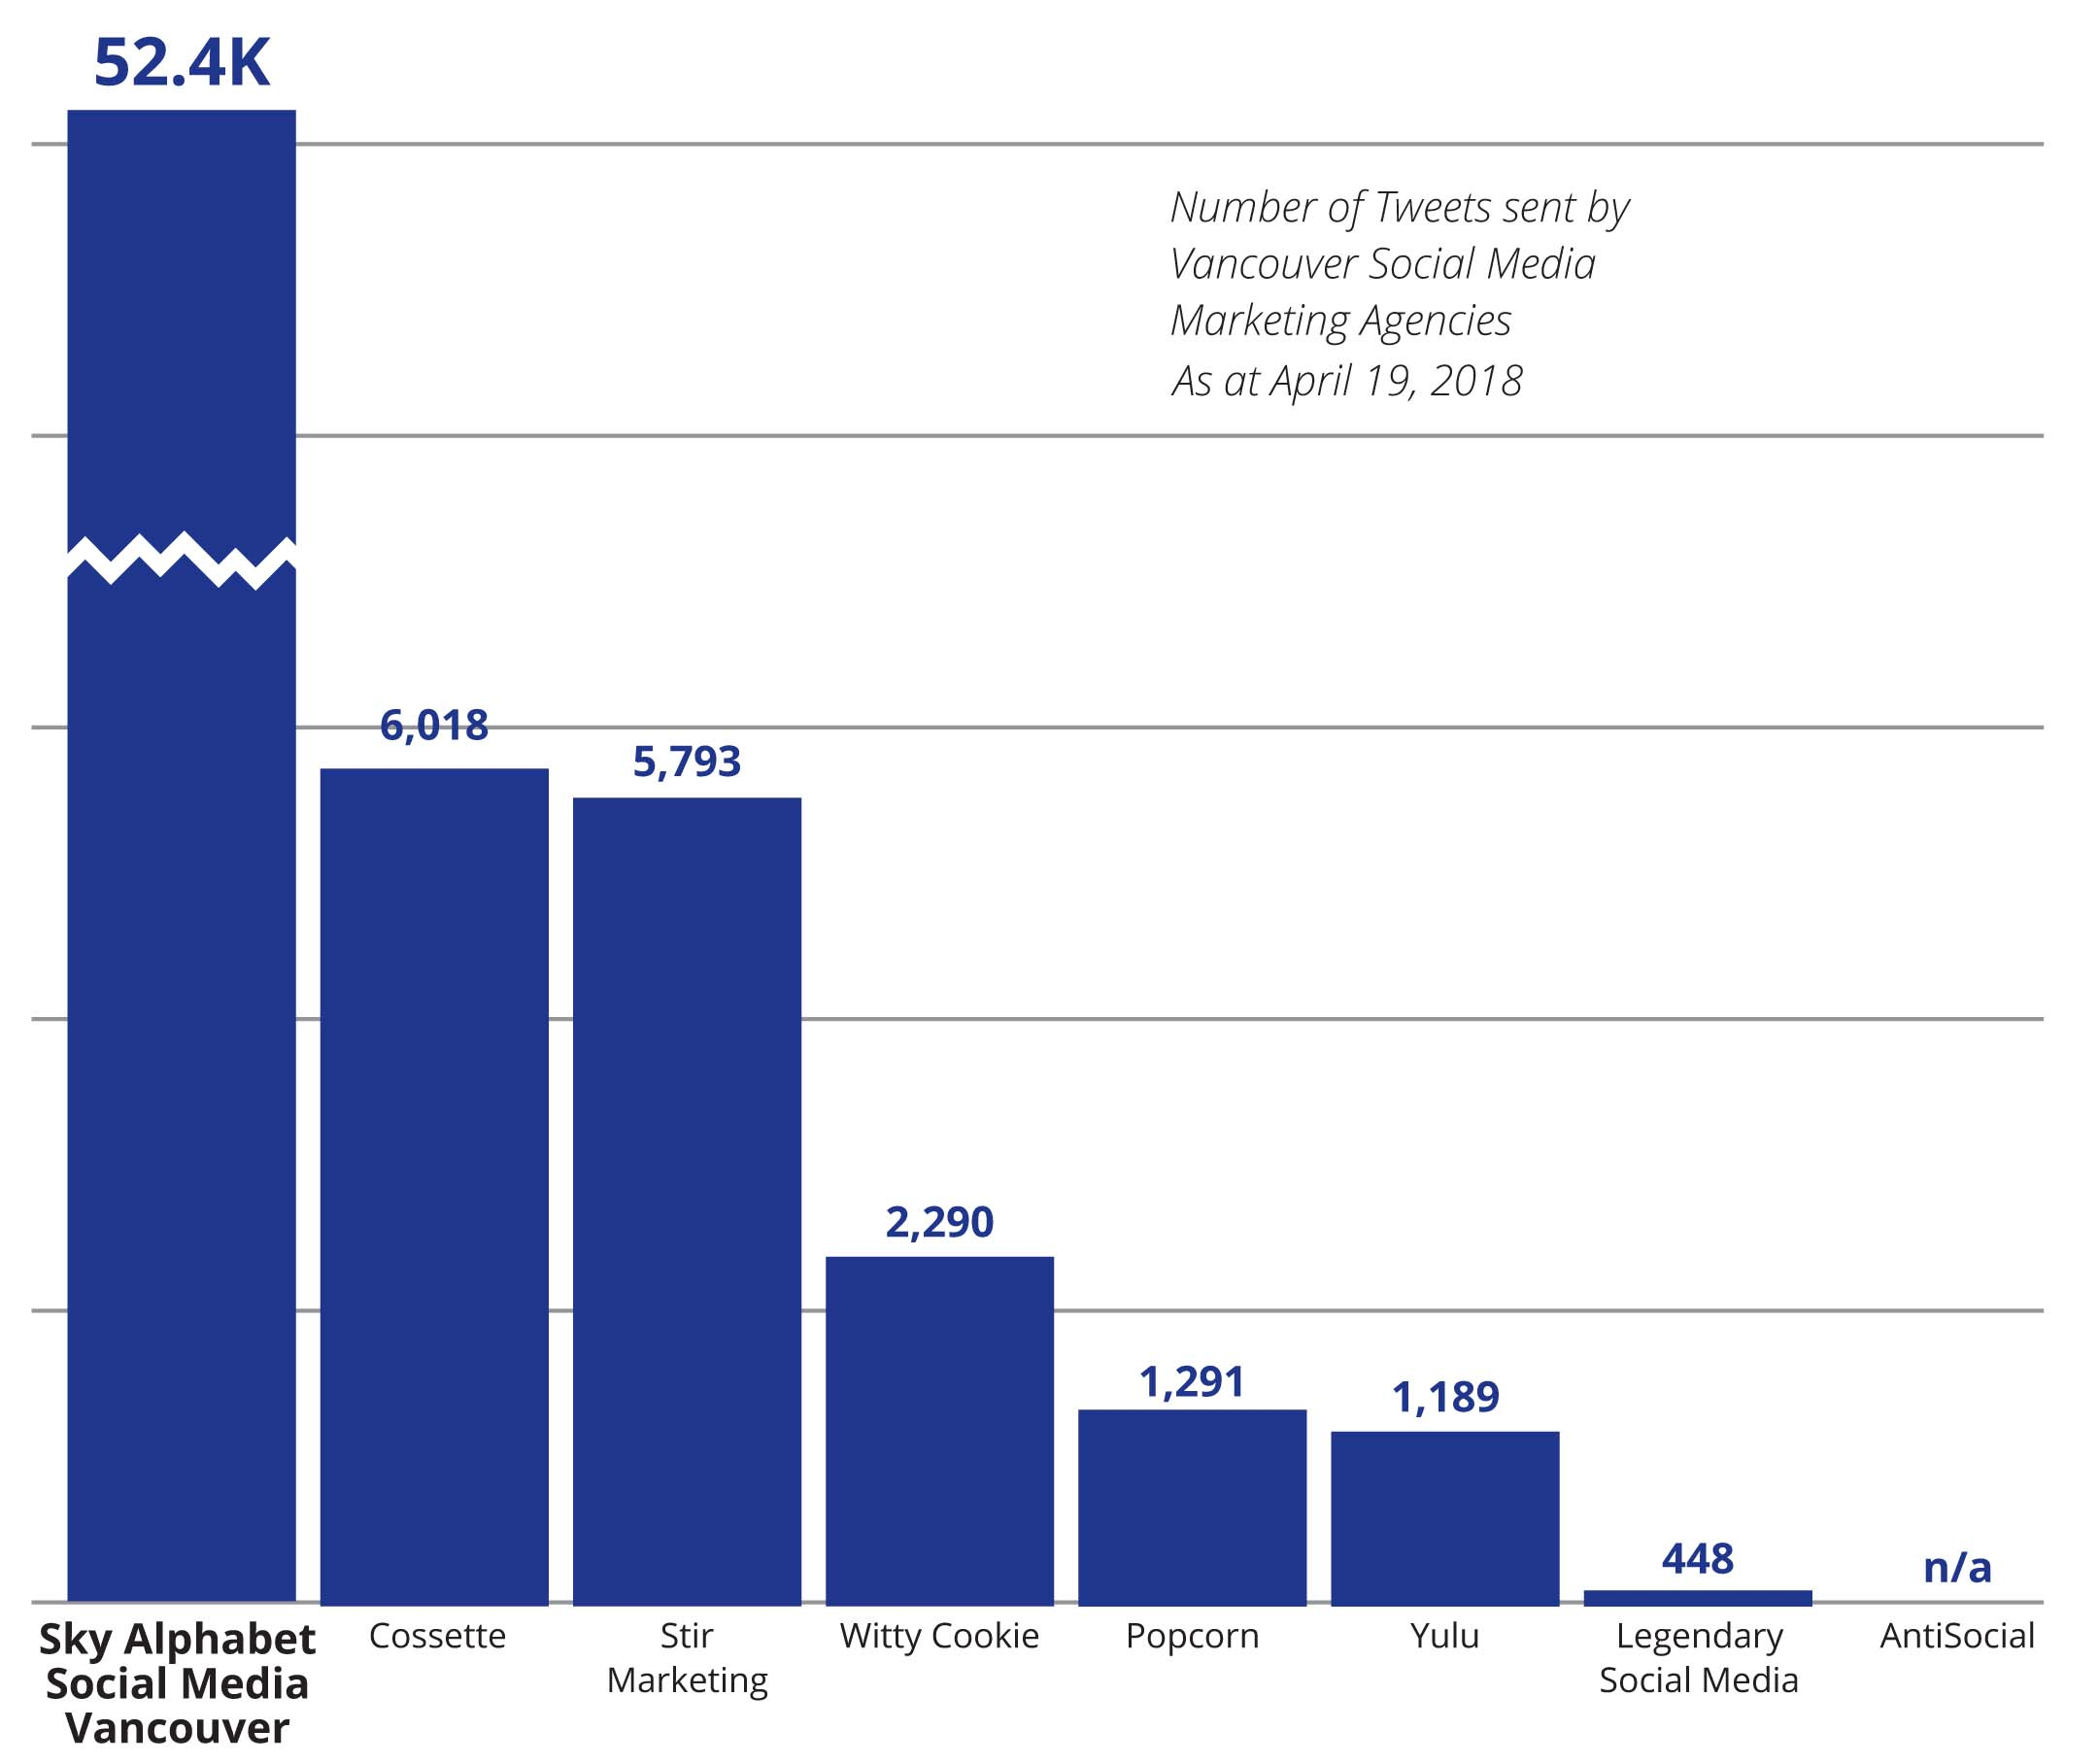 social media marketing vancouver rankings by agency - number of followers